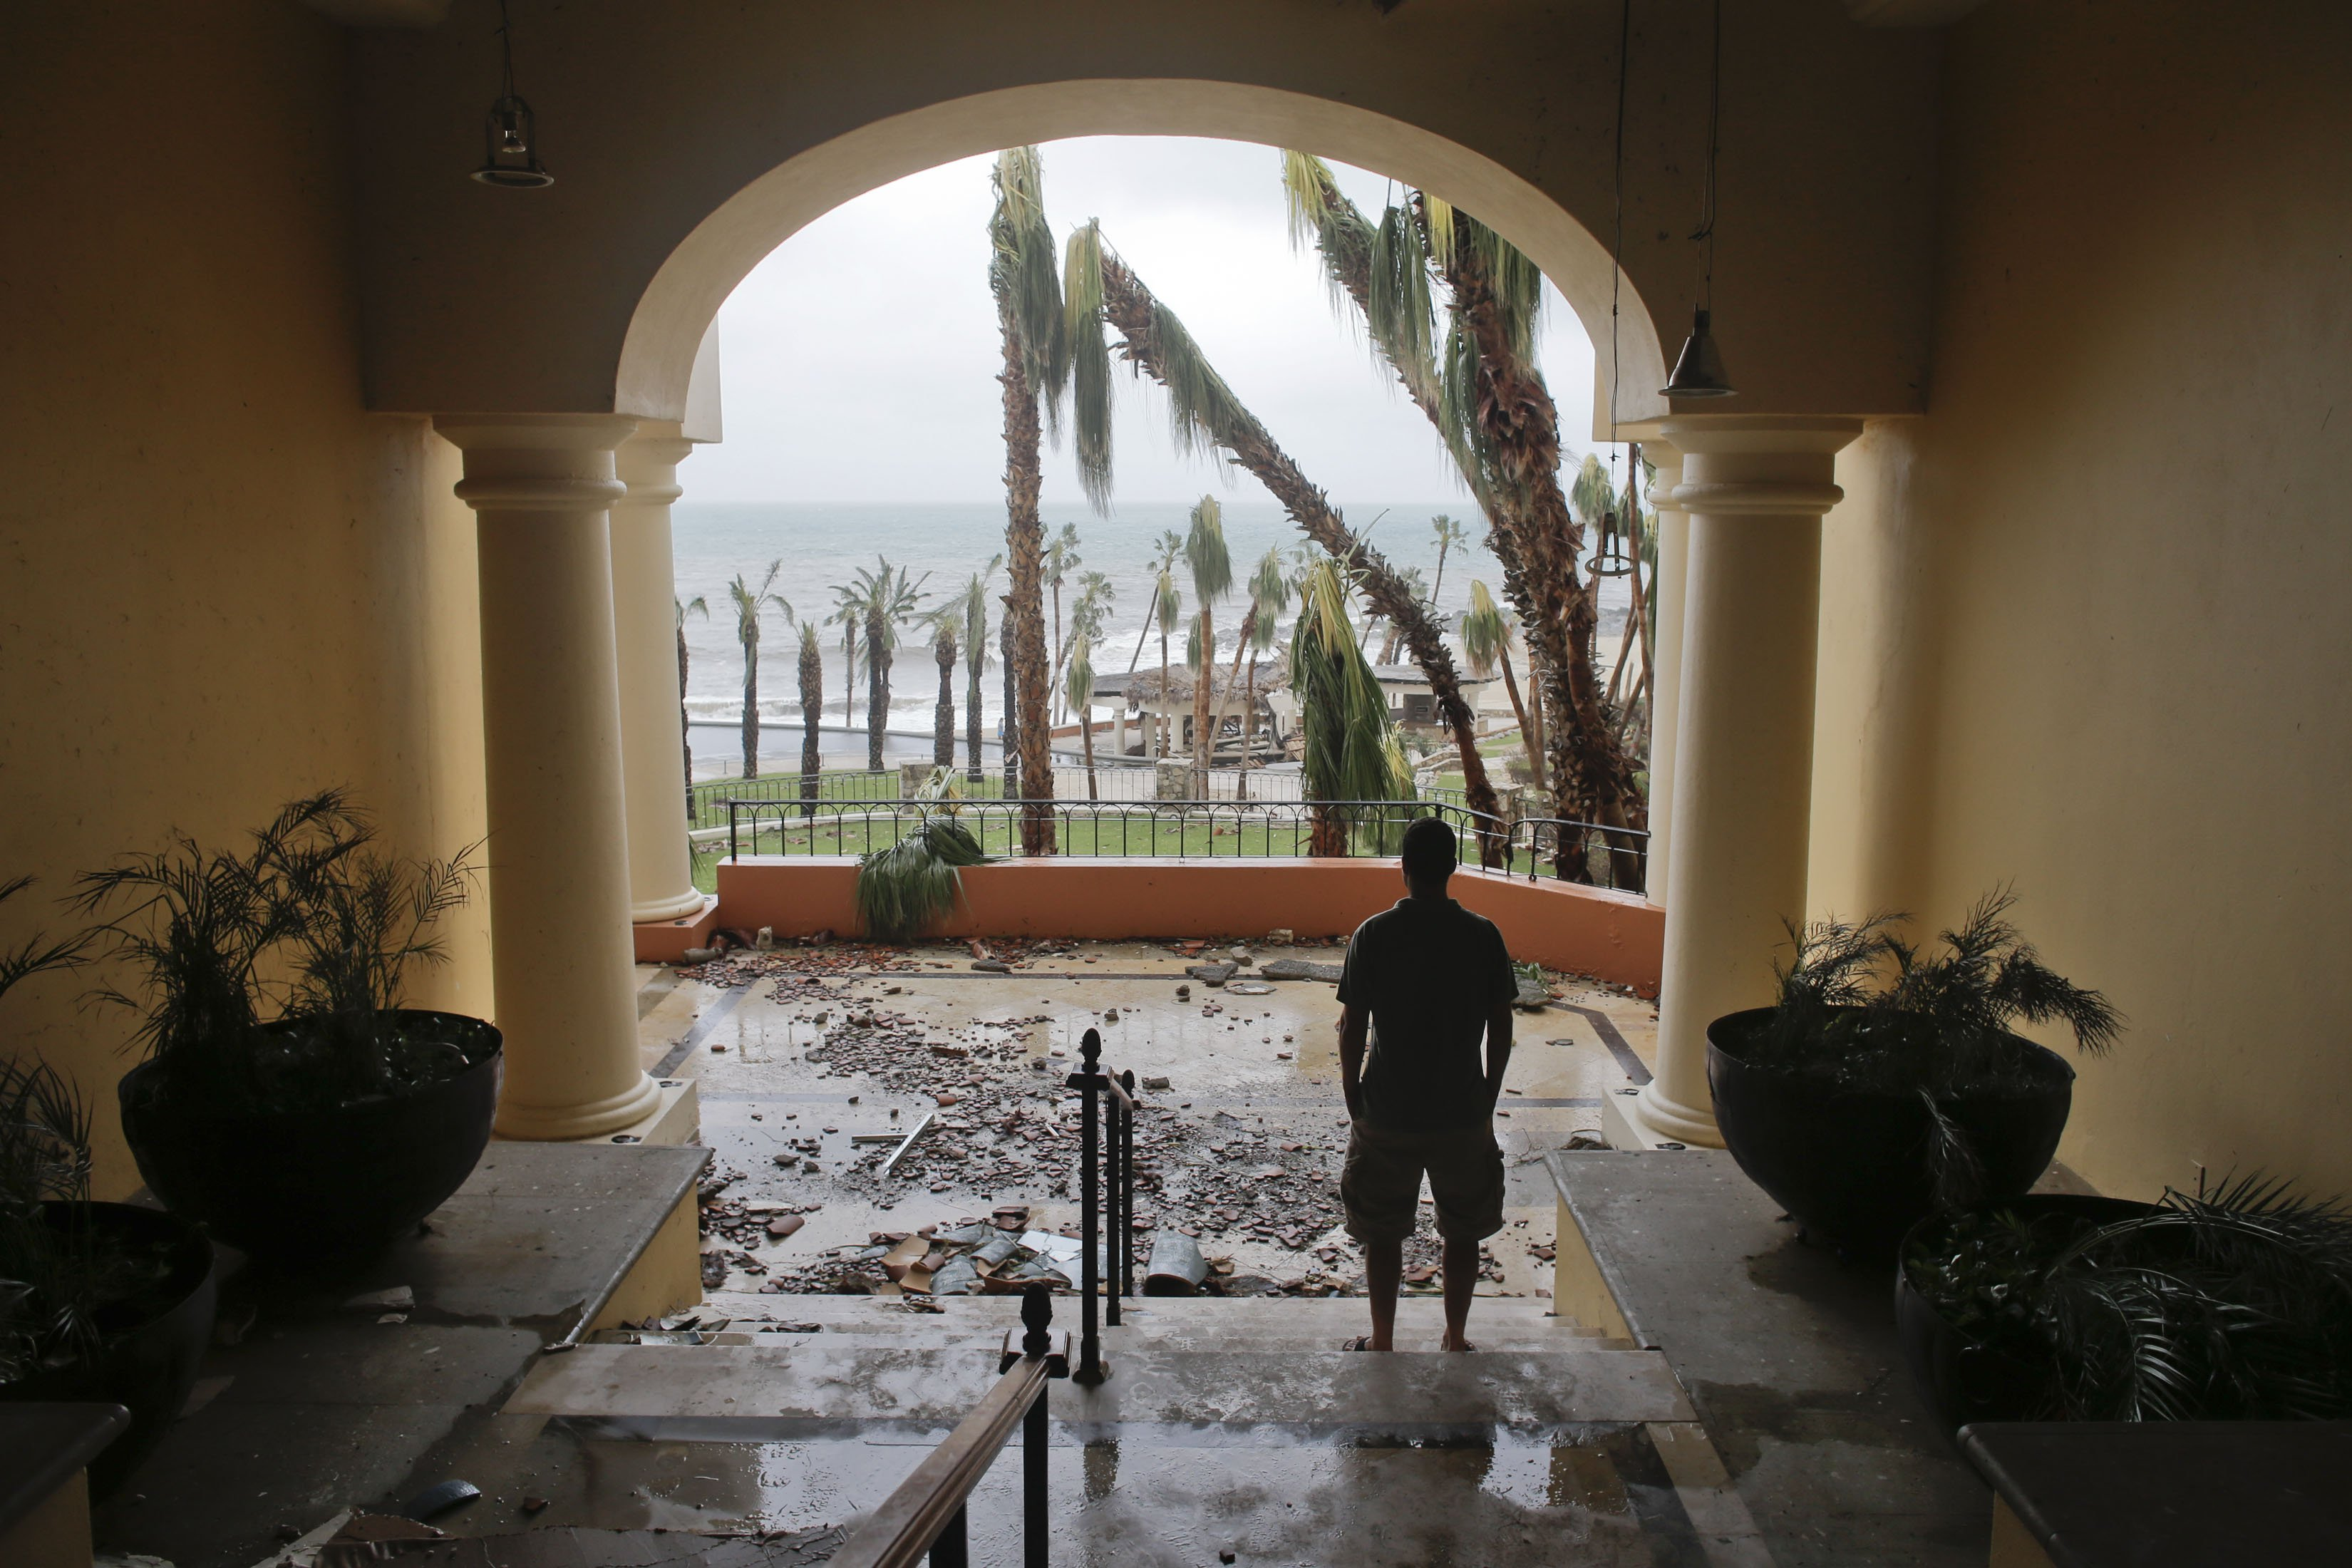 A tourist looks to the ocean from inside a debris-filled area at the Hilton hotel after the resort sustained severe damage from Hurricane Odile in Los Cabos, Mexico,  Sept. 15, 2014.